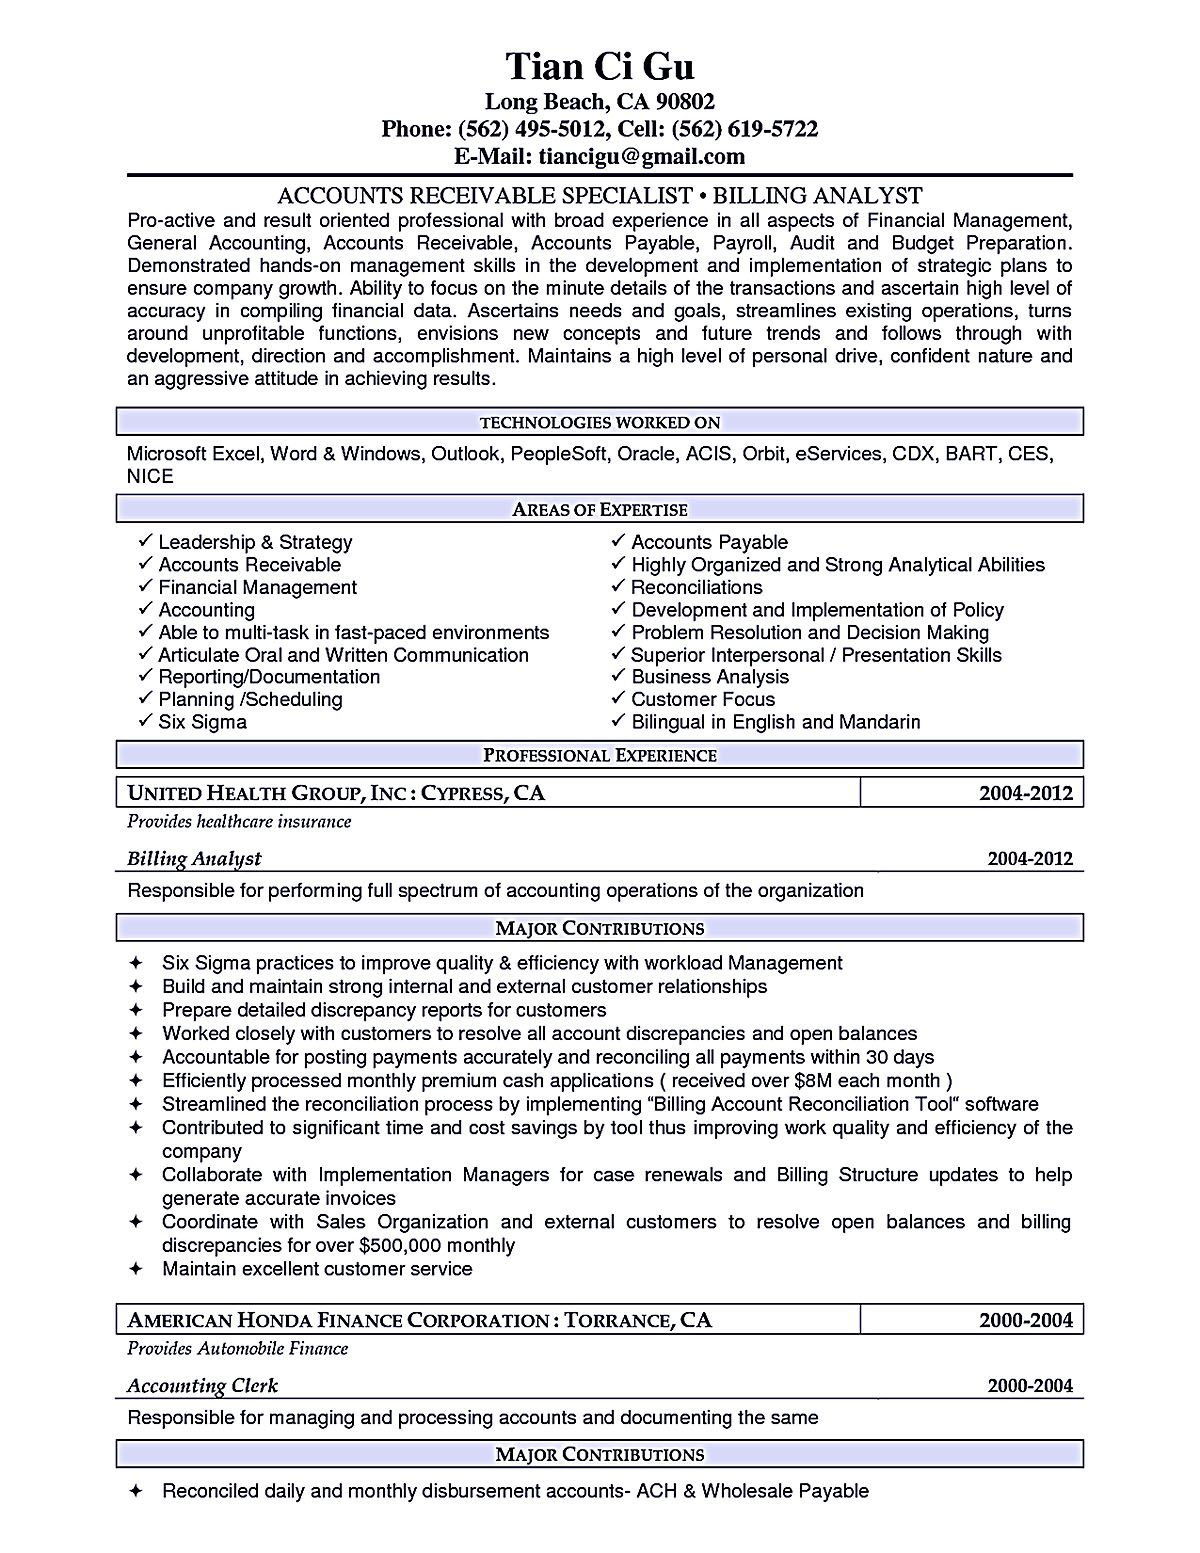 Account Analyst Resume Account Receivable Resume Shows Both Technical And